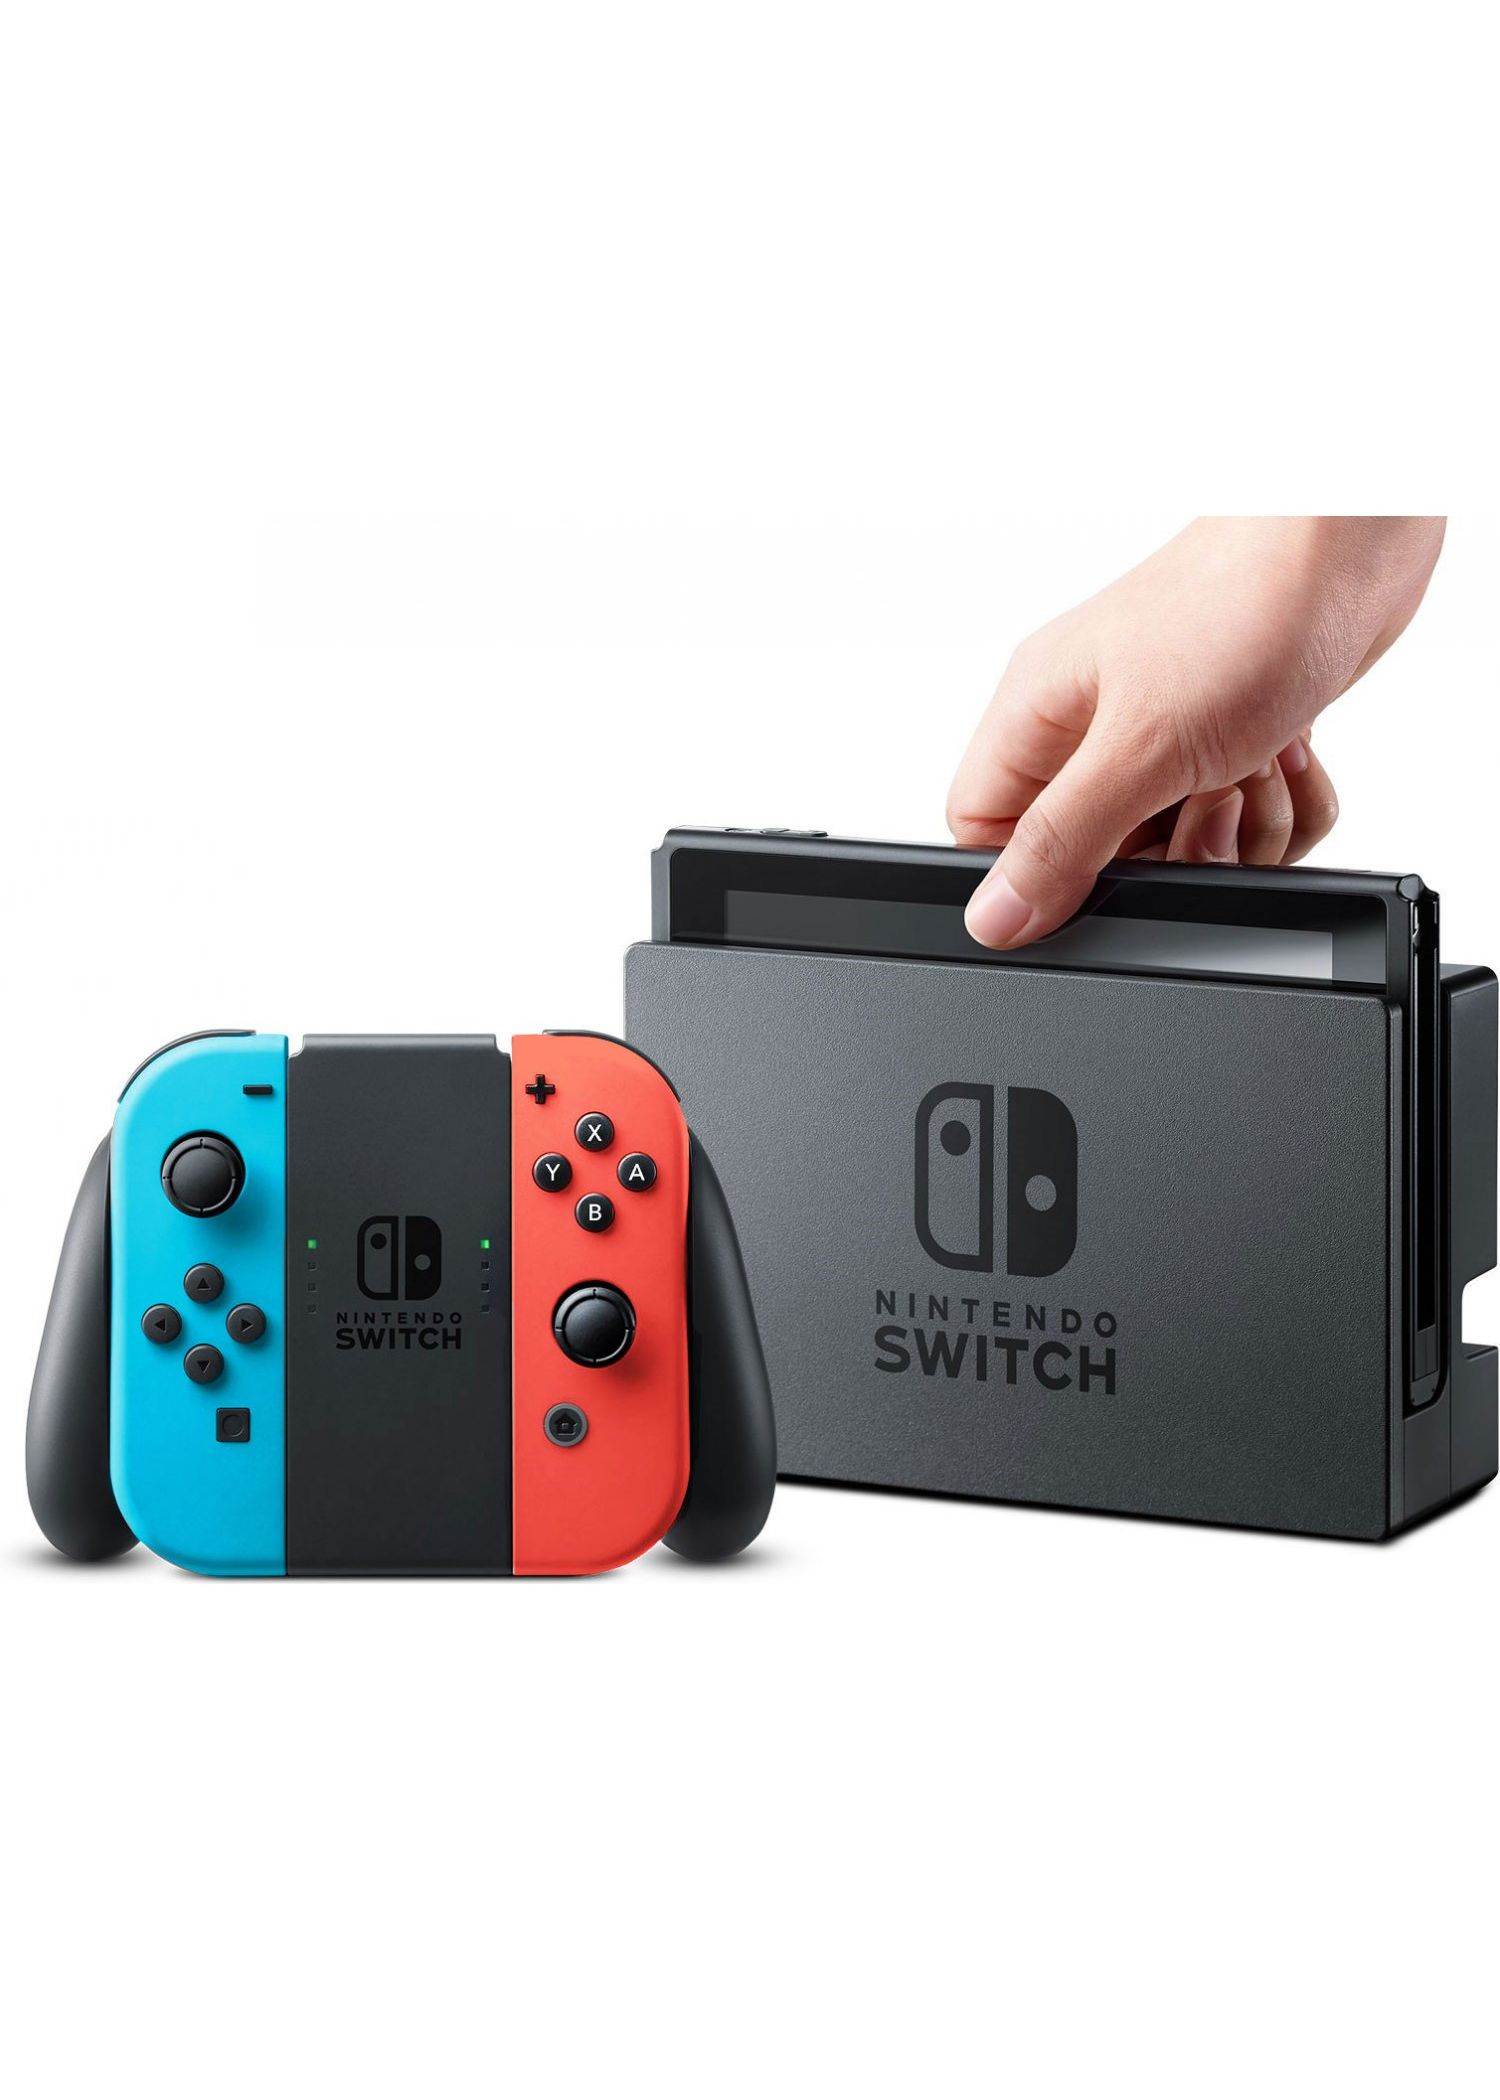 NSW NINTENDO SWITCH (NEON BLUE / NEON RED) (AS).